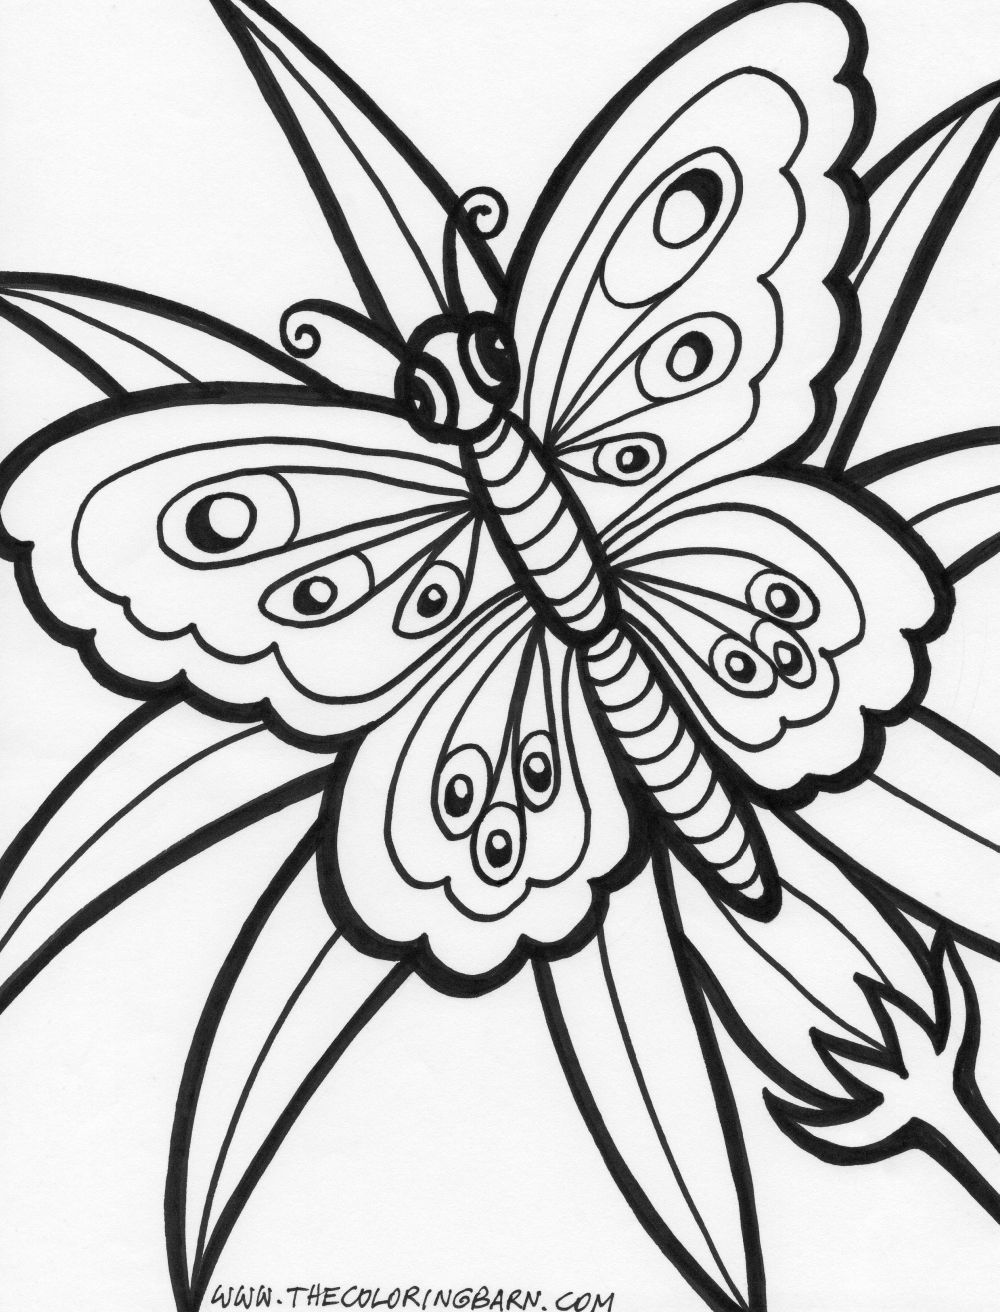 Printable coloring pages for adults flowers - Summer Flowers Printable Coloring Pages Free Large Images